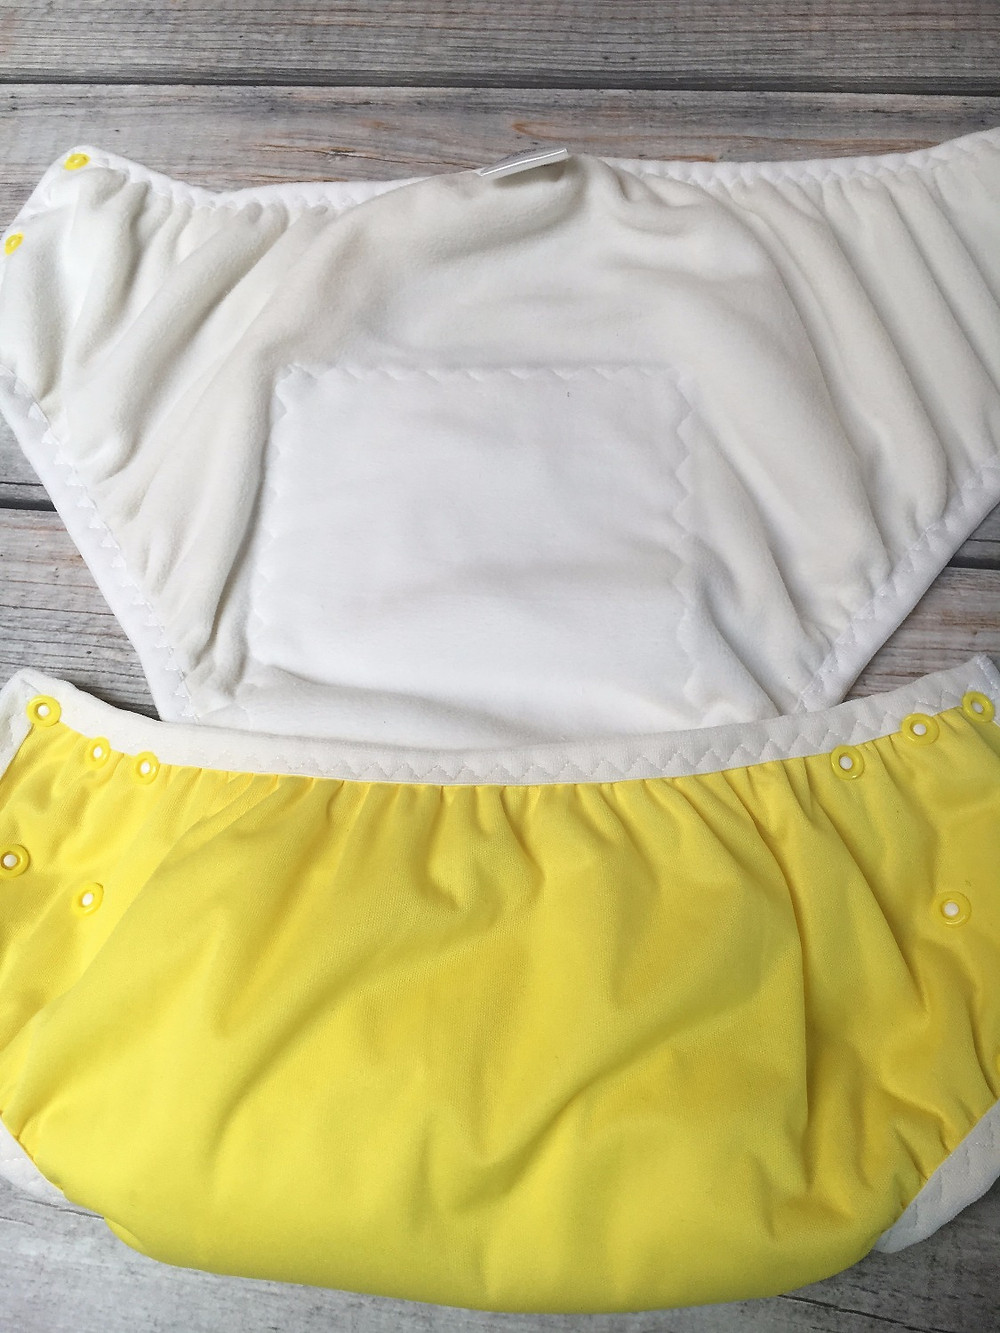 Adult Medium All in One Brief- Lemon yellow